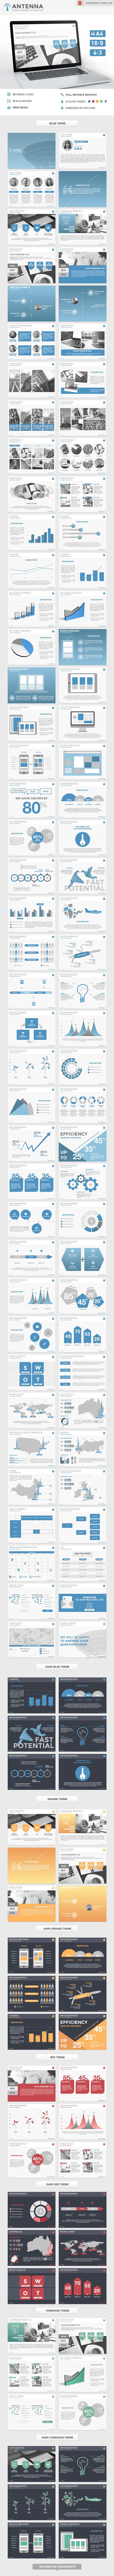 Antenna PowerPoint Presentation Template #design Download: http://graphicriver.net/item/antenna-powerpoint-presentation-template-/11551985?ref=ksioks